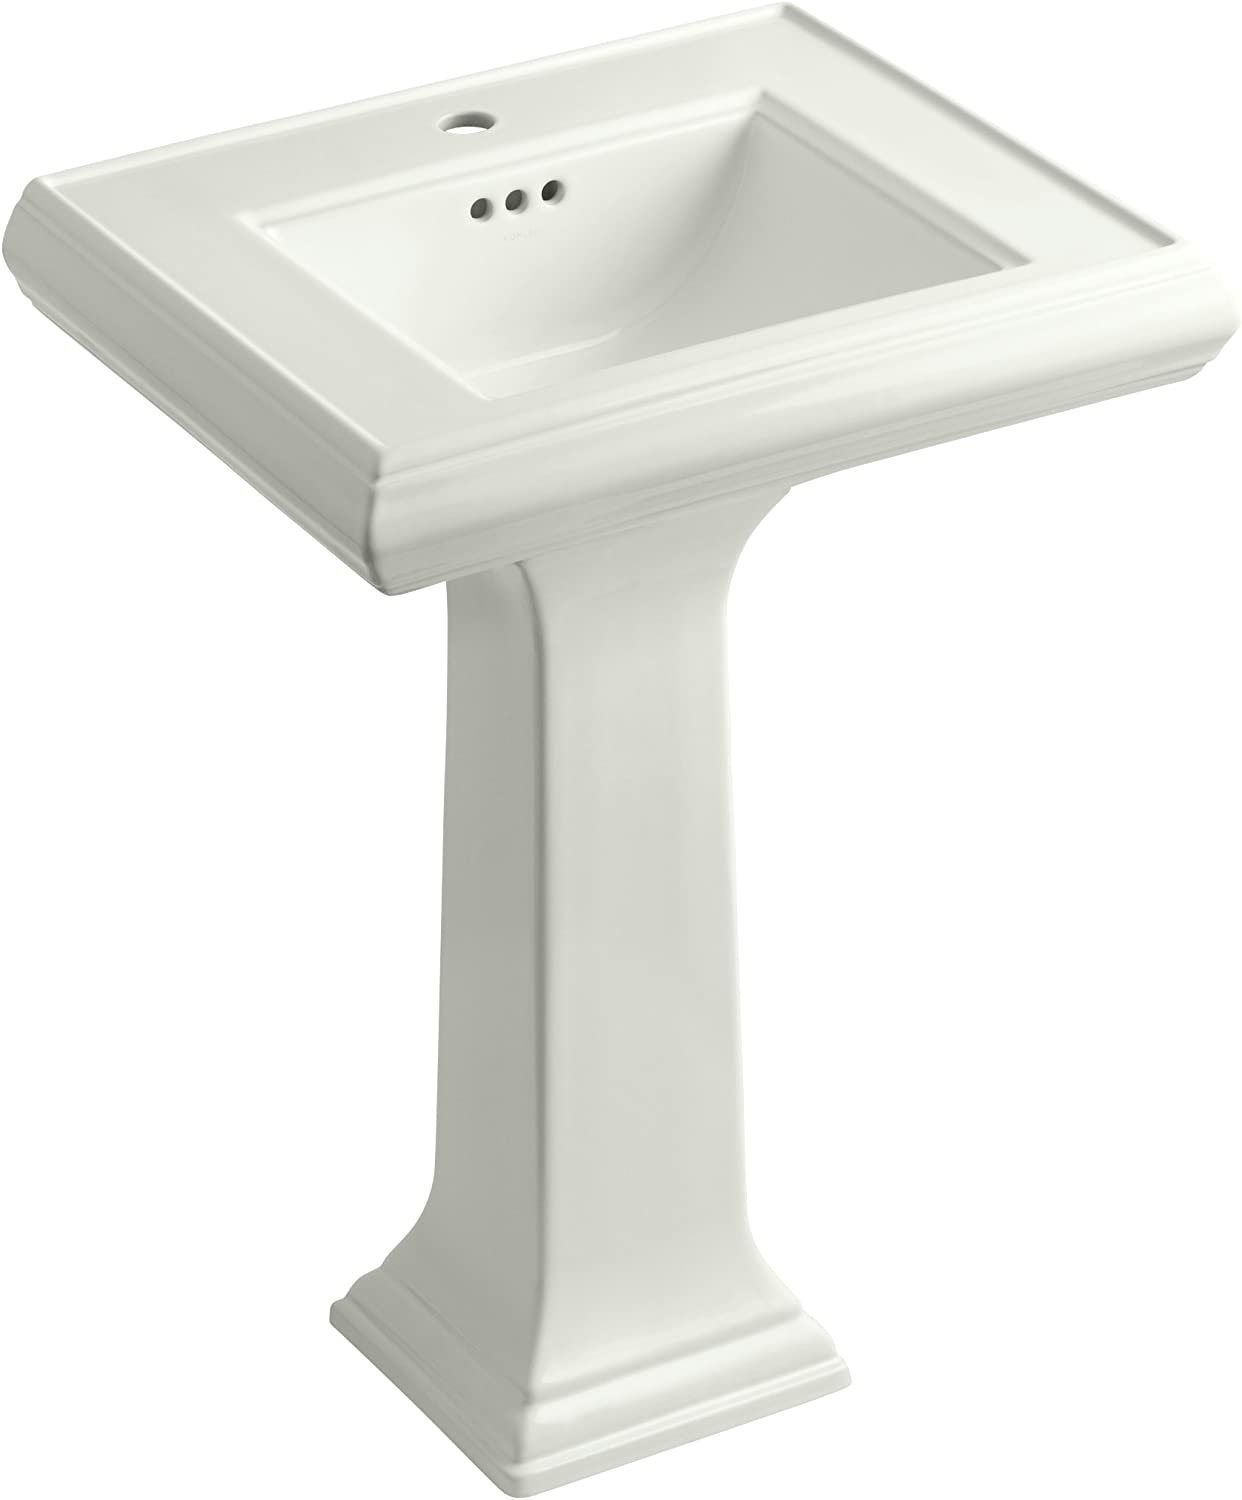 KOHLER K-2238-1-NY Oakland Mall Memoirs Pedestal with Bathroom Sink Don't miss the campaign Single-Ho